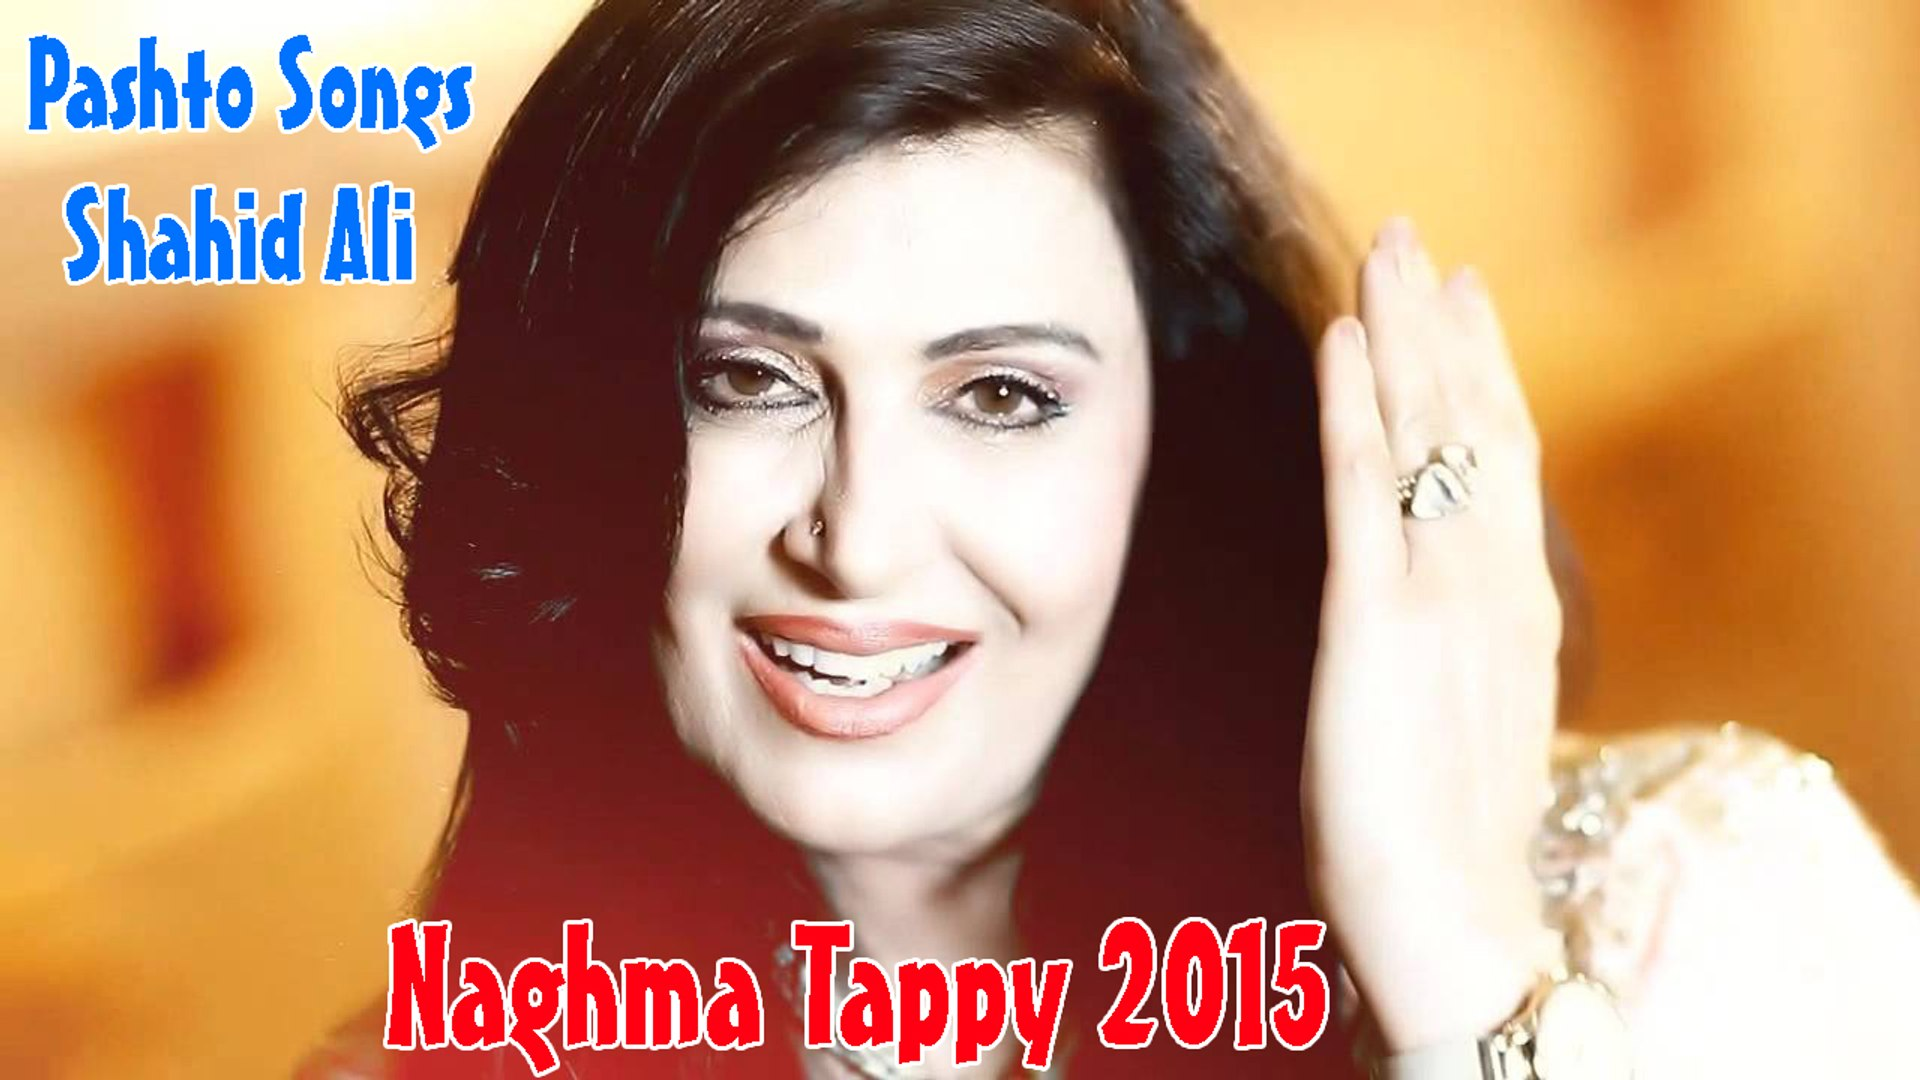 Pashto Songs Naghma Tappy Afghan New Songs 2015